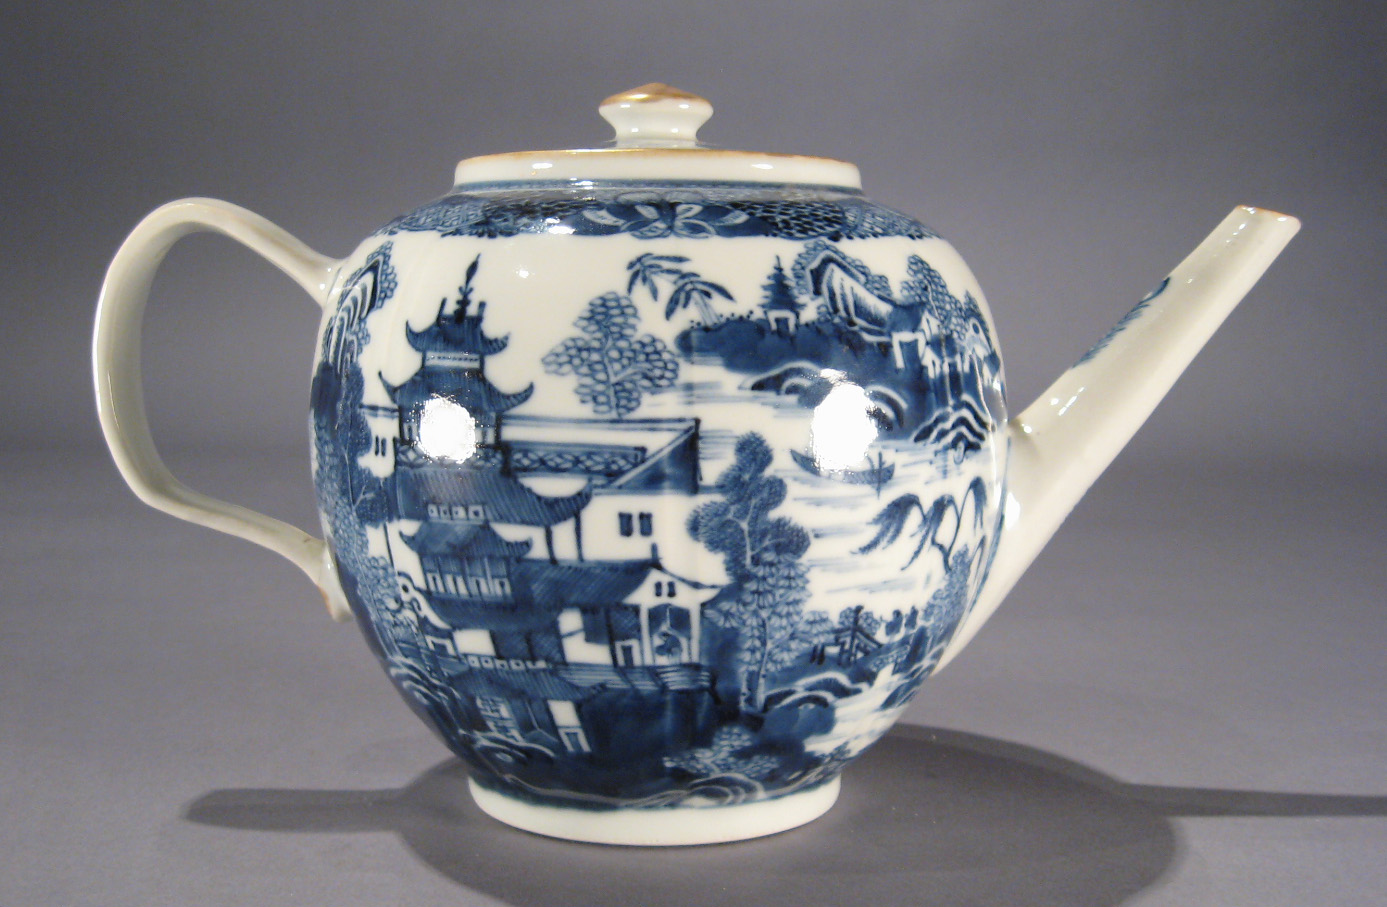 Chinese Export Porcelain Teapot In The Meandering Wall